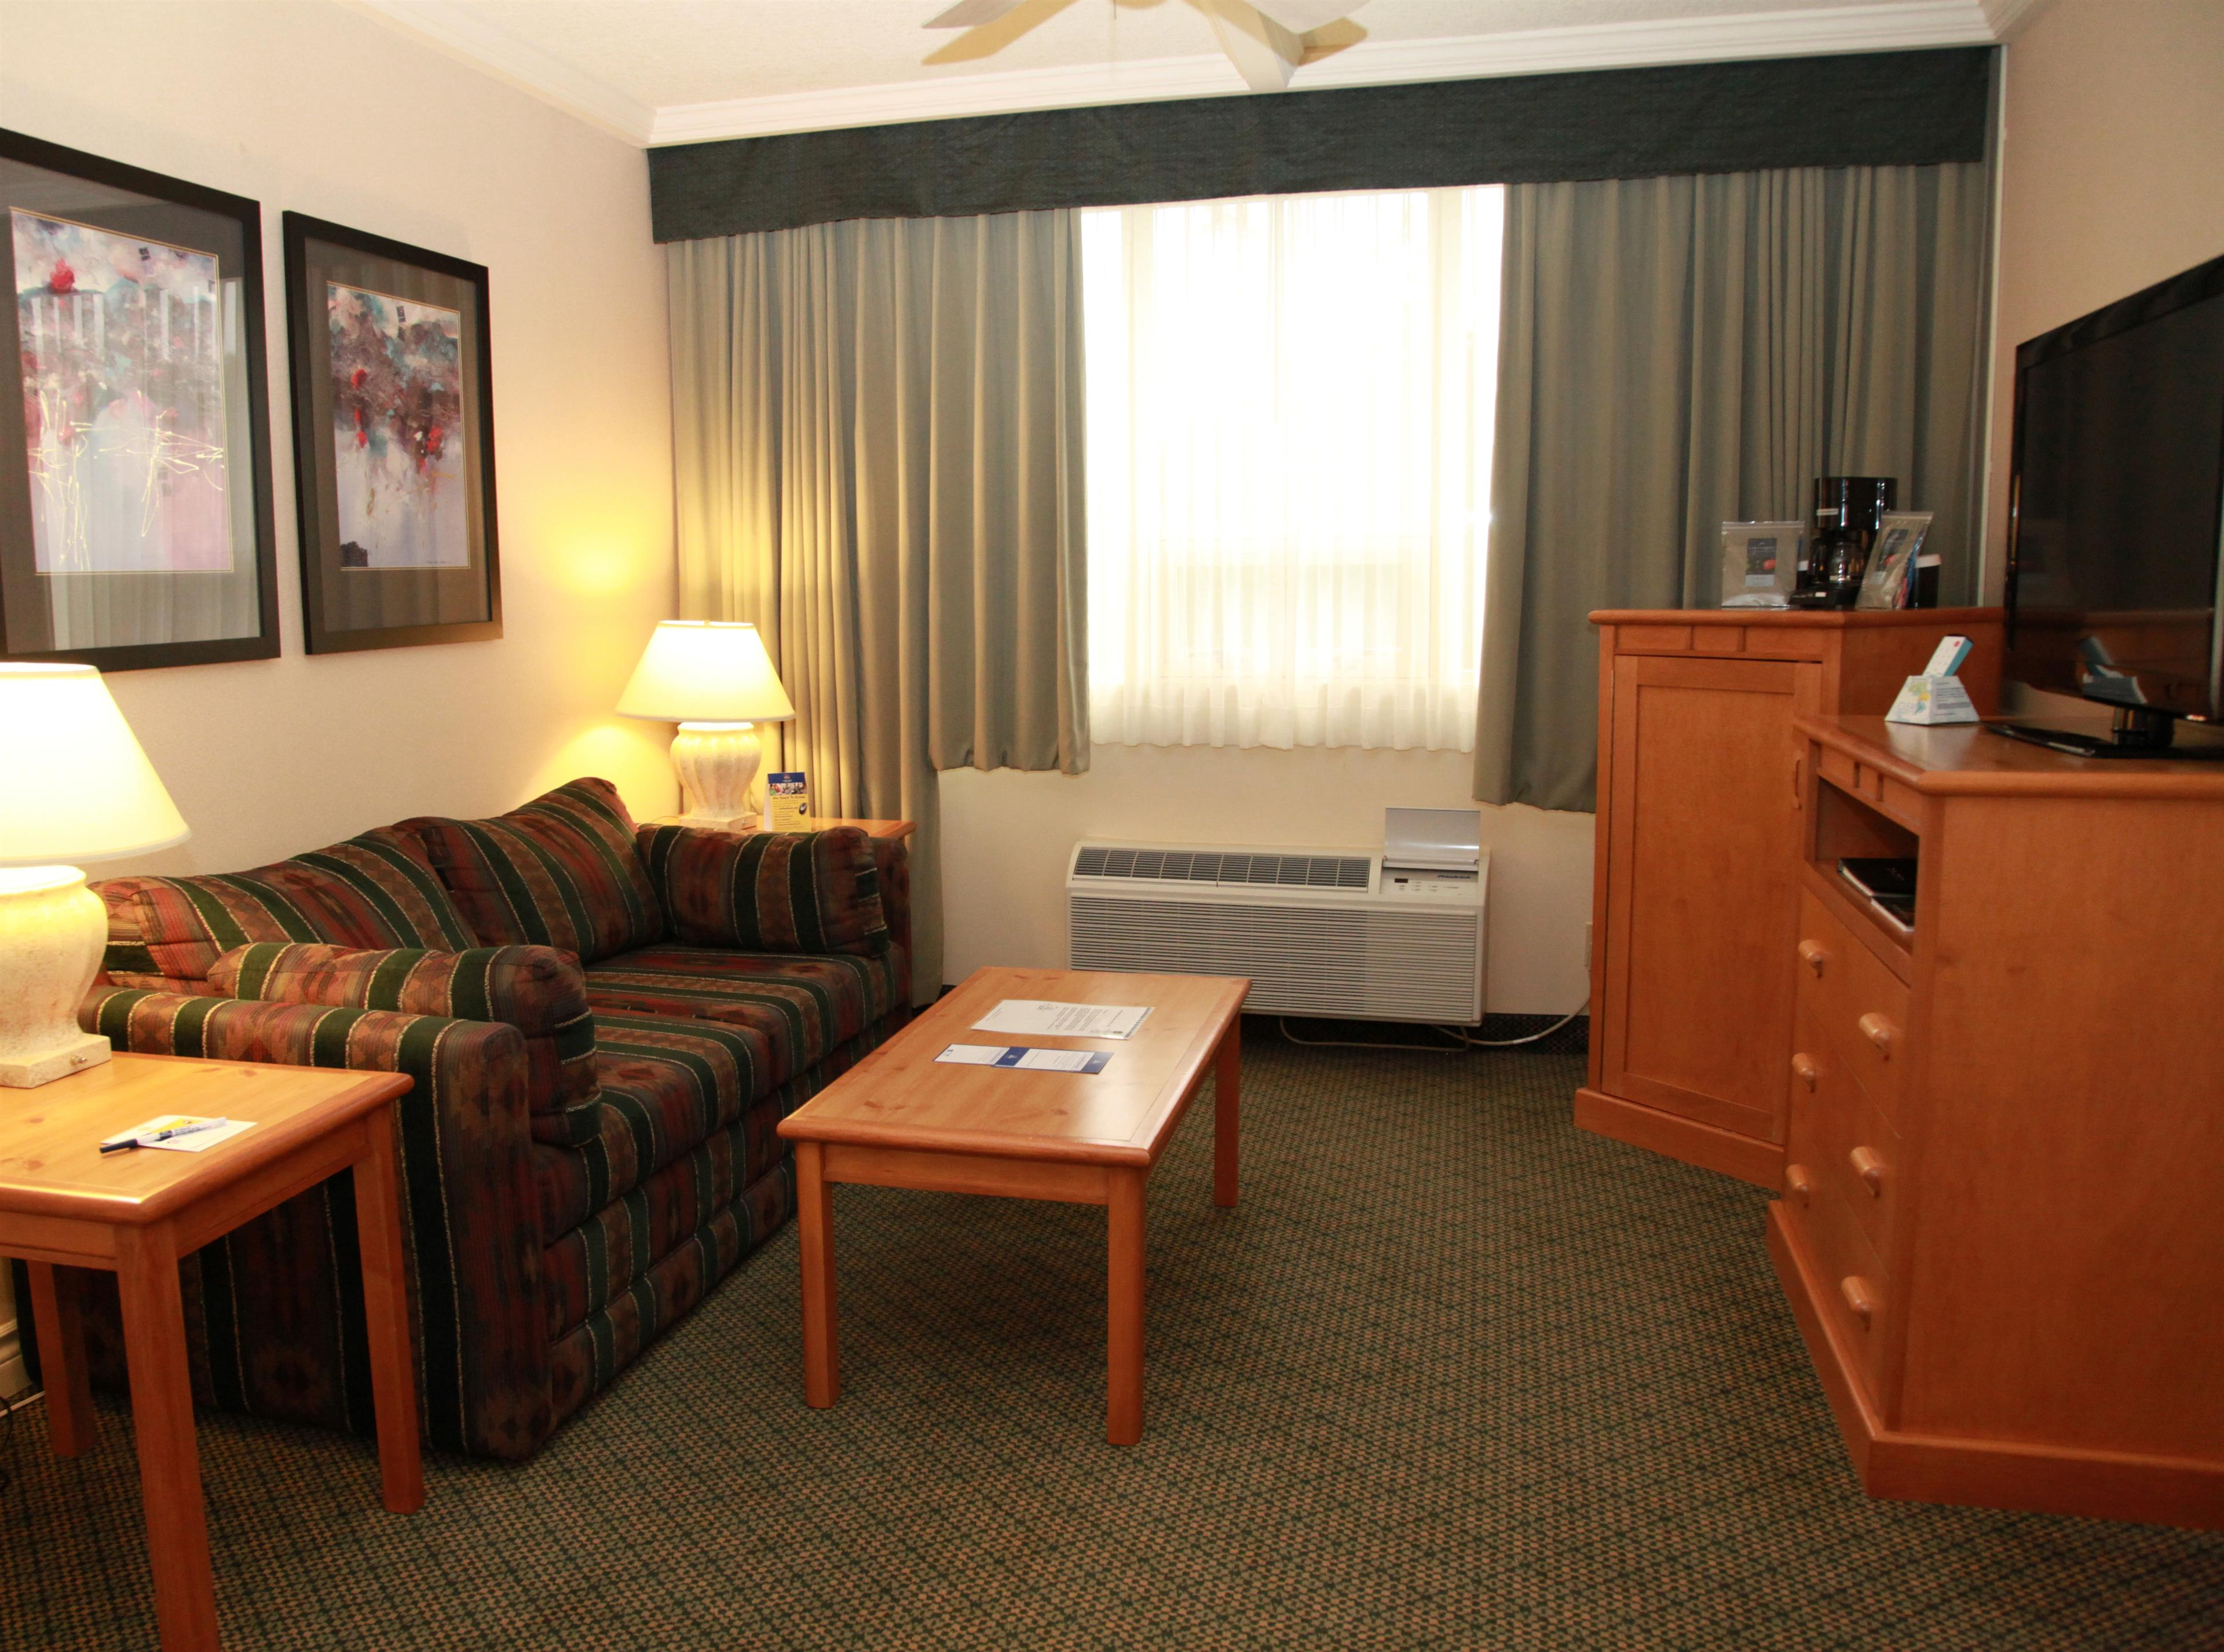 Best Western Plus Barclay Hotel in Port Alberni: Honeymoon Suite Sitting Area